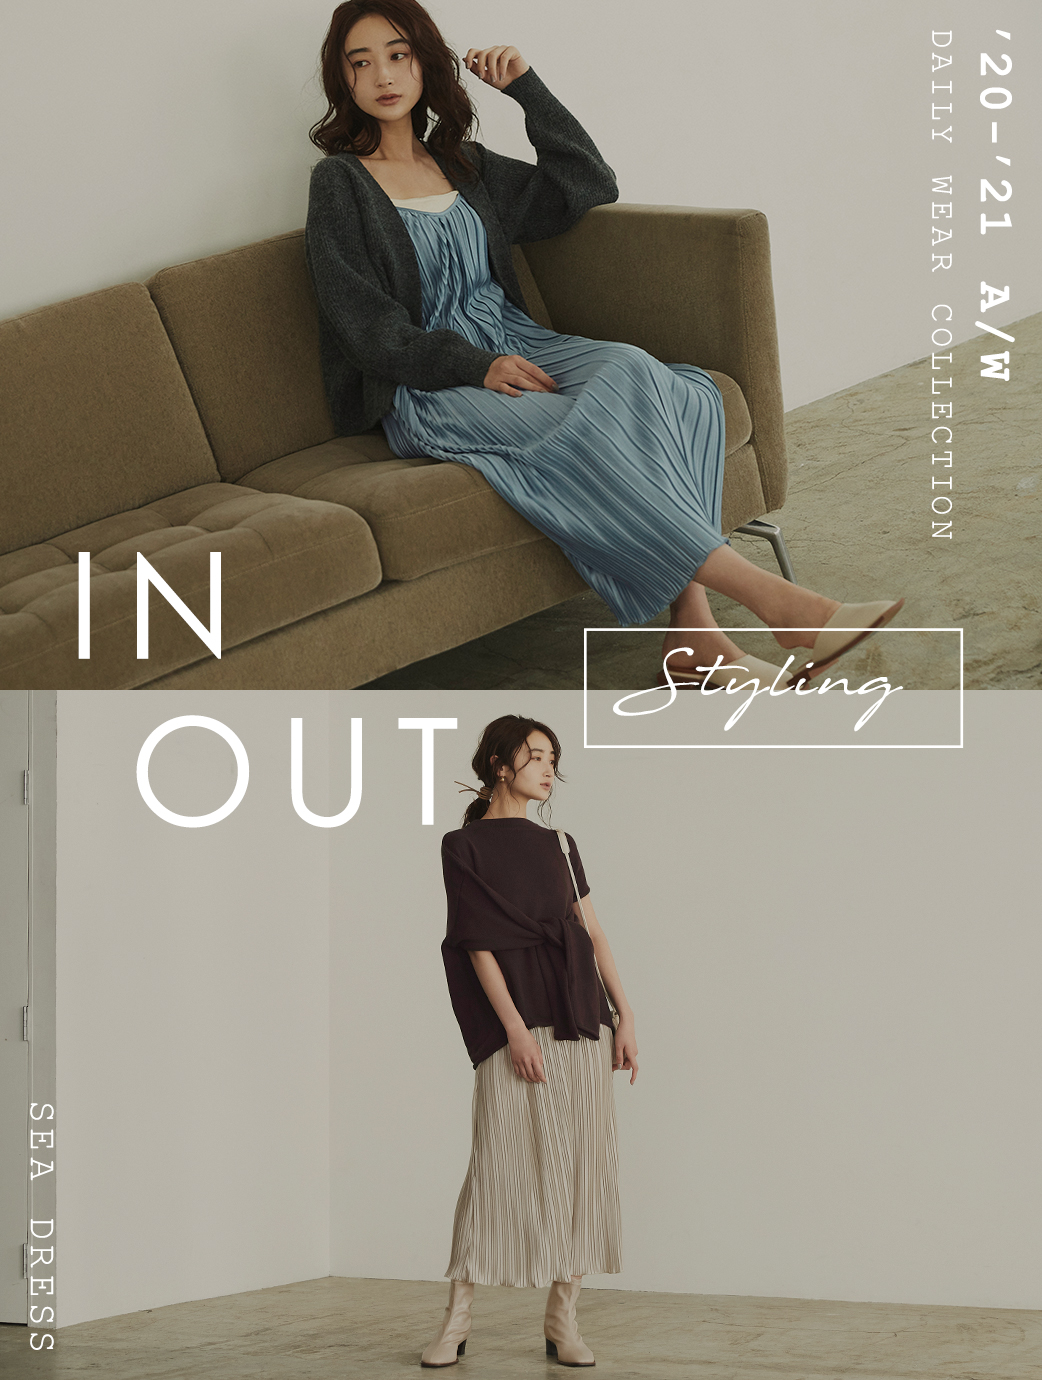 IN/OUT Styling